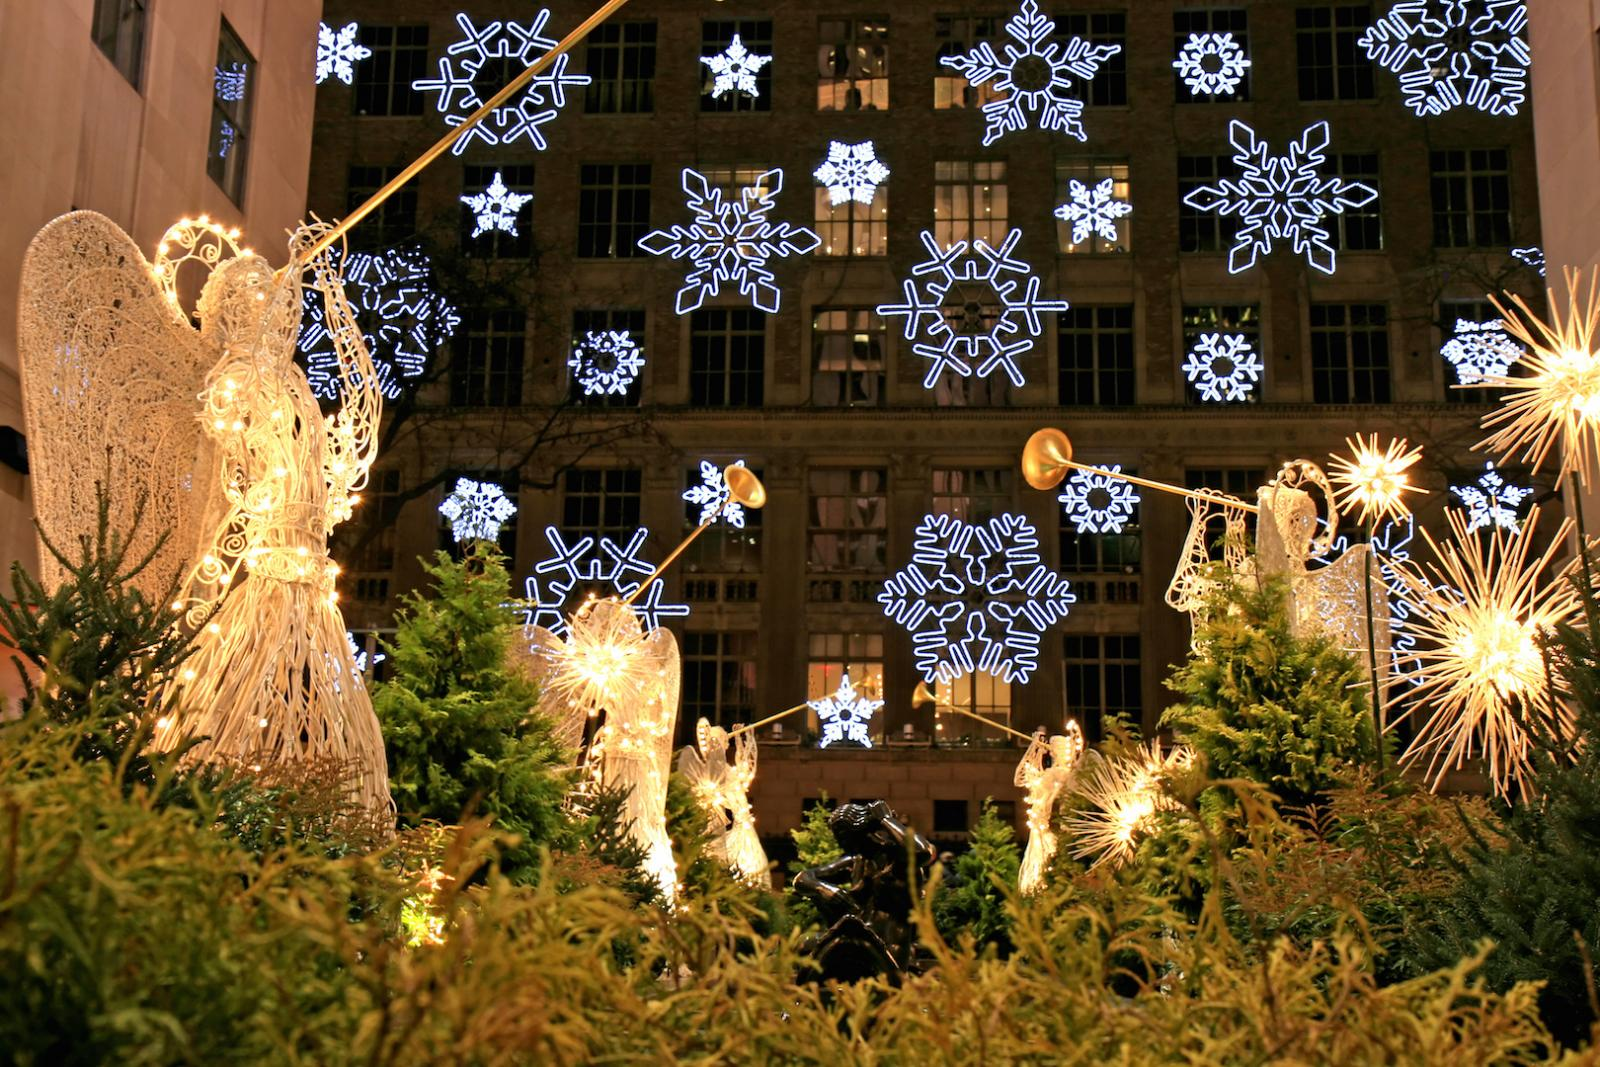 Watch 2021 New York Christmas Tree Lighting 2021 The Christmas Tree At Rockefeller Center 2021 A New York Tradition